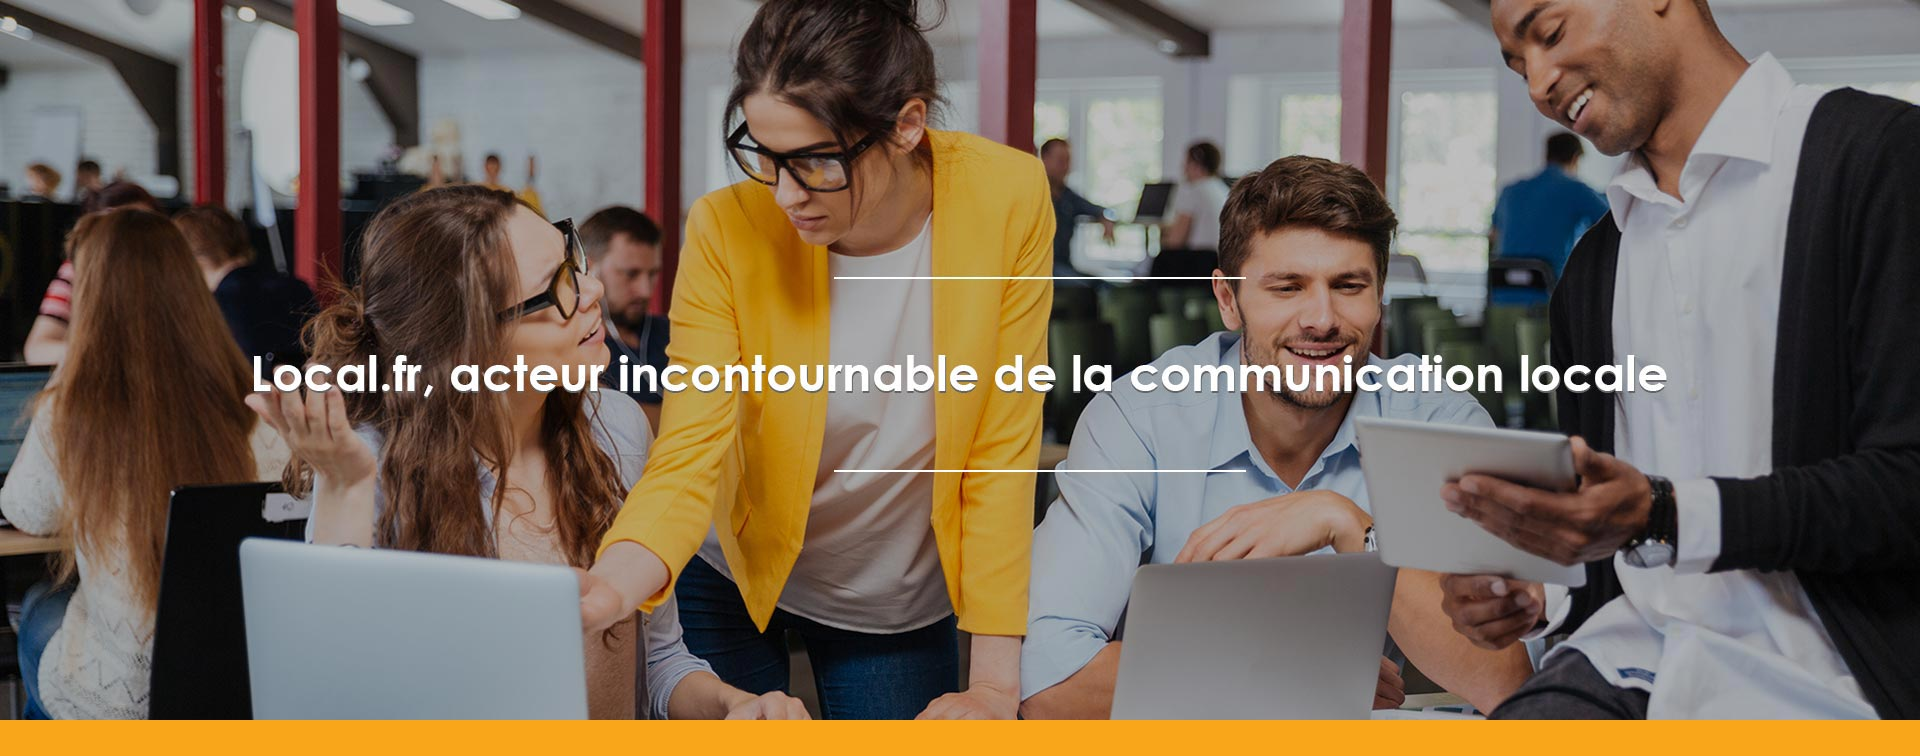 Local.fr acteur incontournable de la communication locale